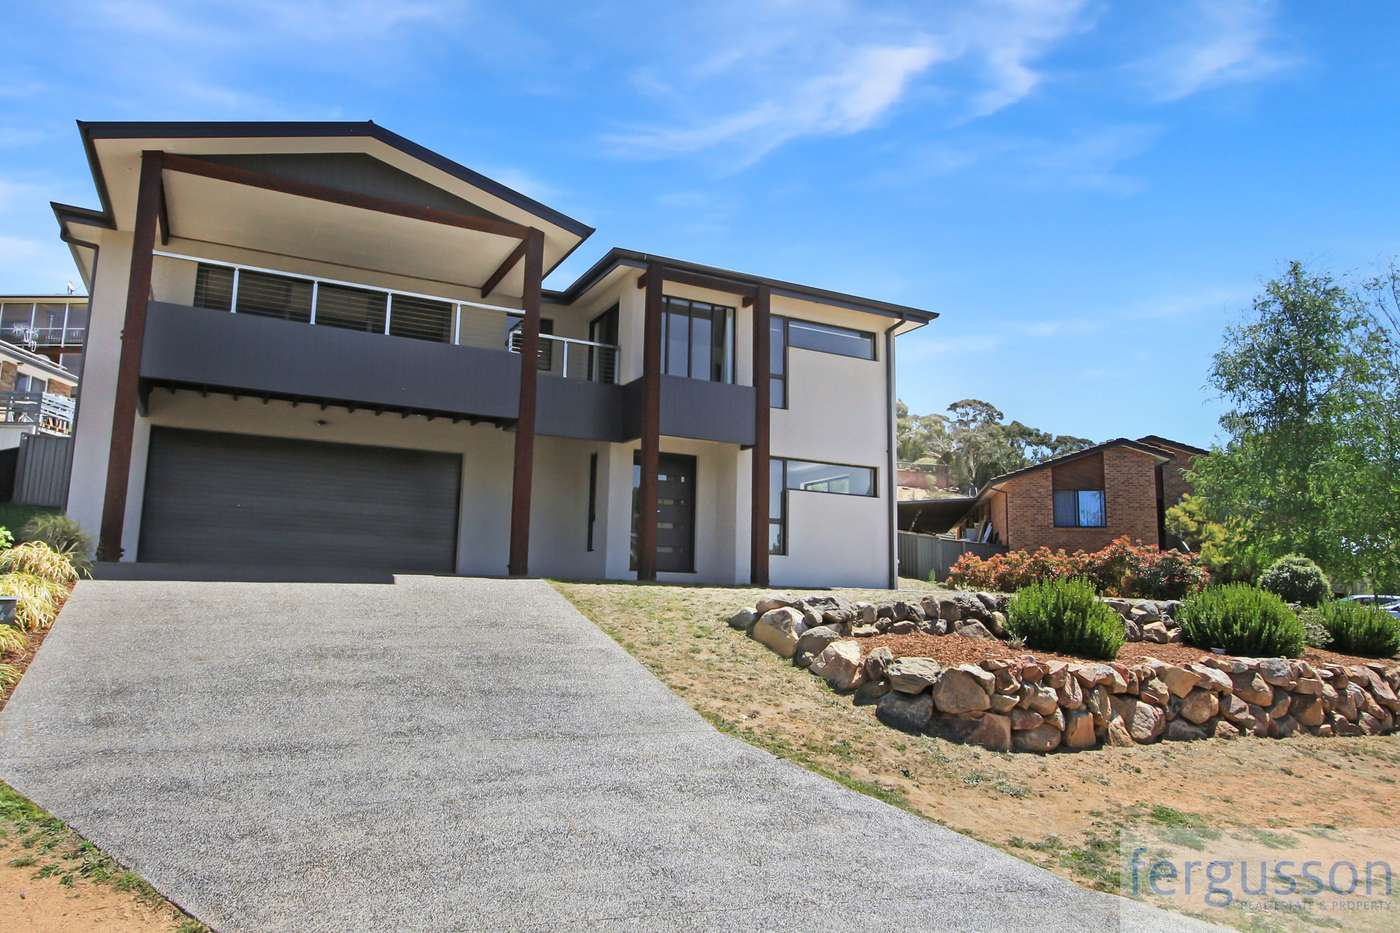 Main view of Homely house listing, 44 Kiah Avenue, Cooma, NSW 2630